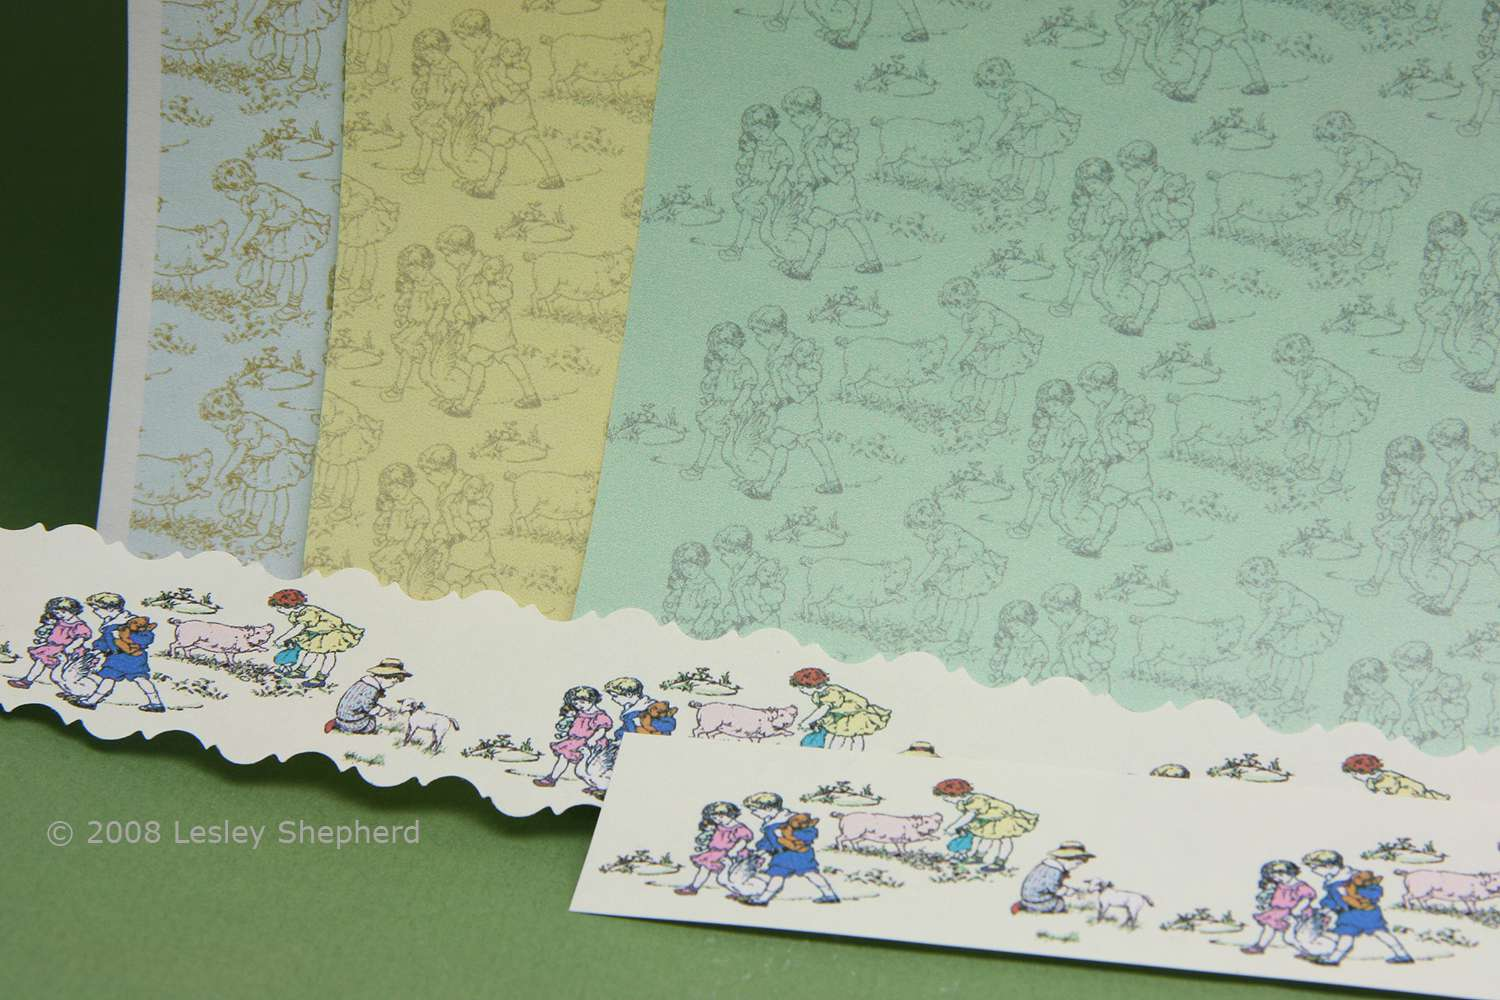 Three colorways of 1:12 scale dolls house scale toile wallpaper with children and animals.